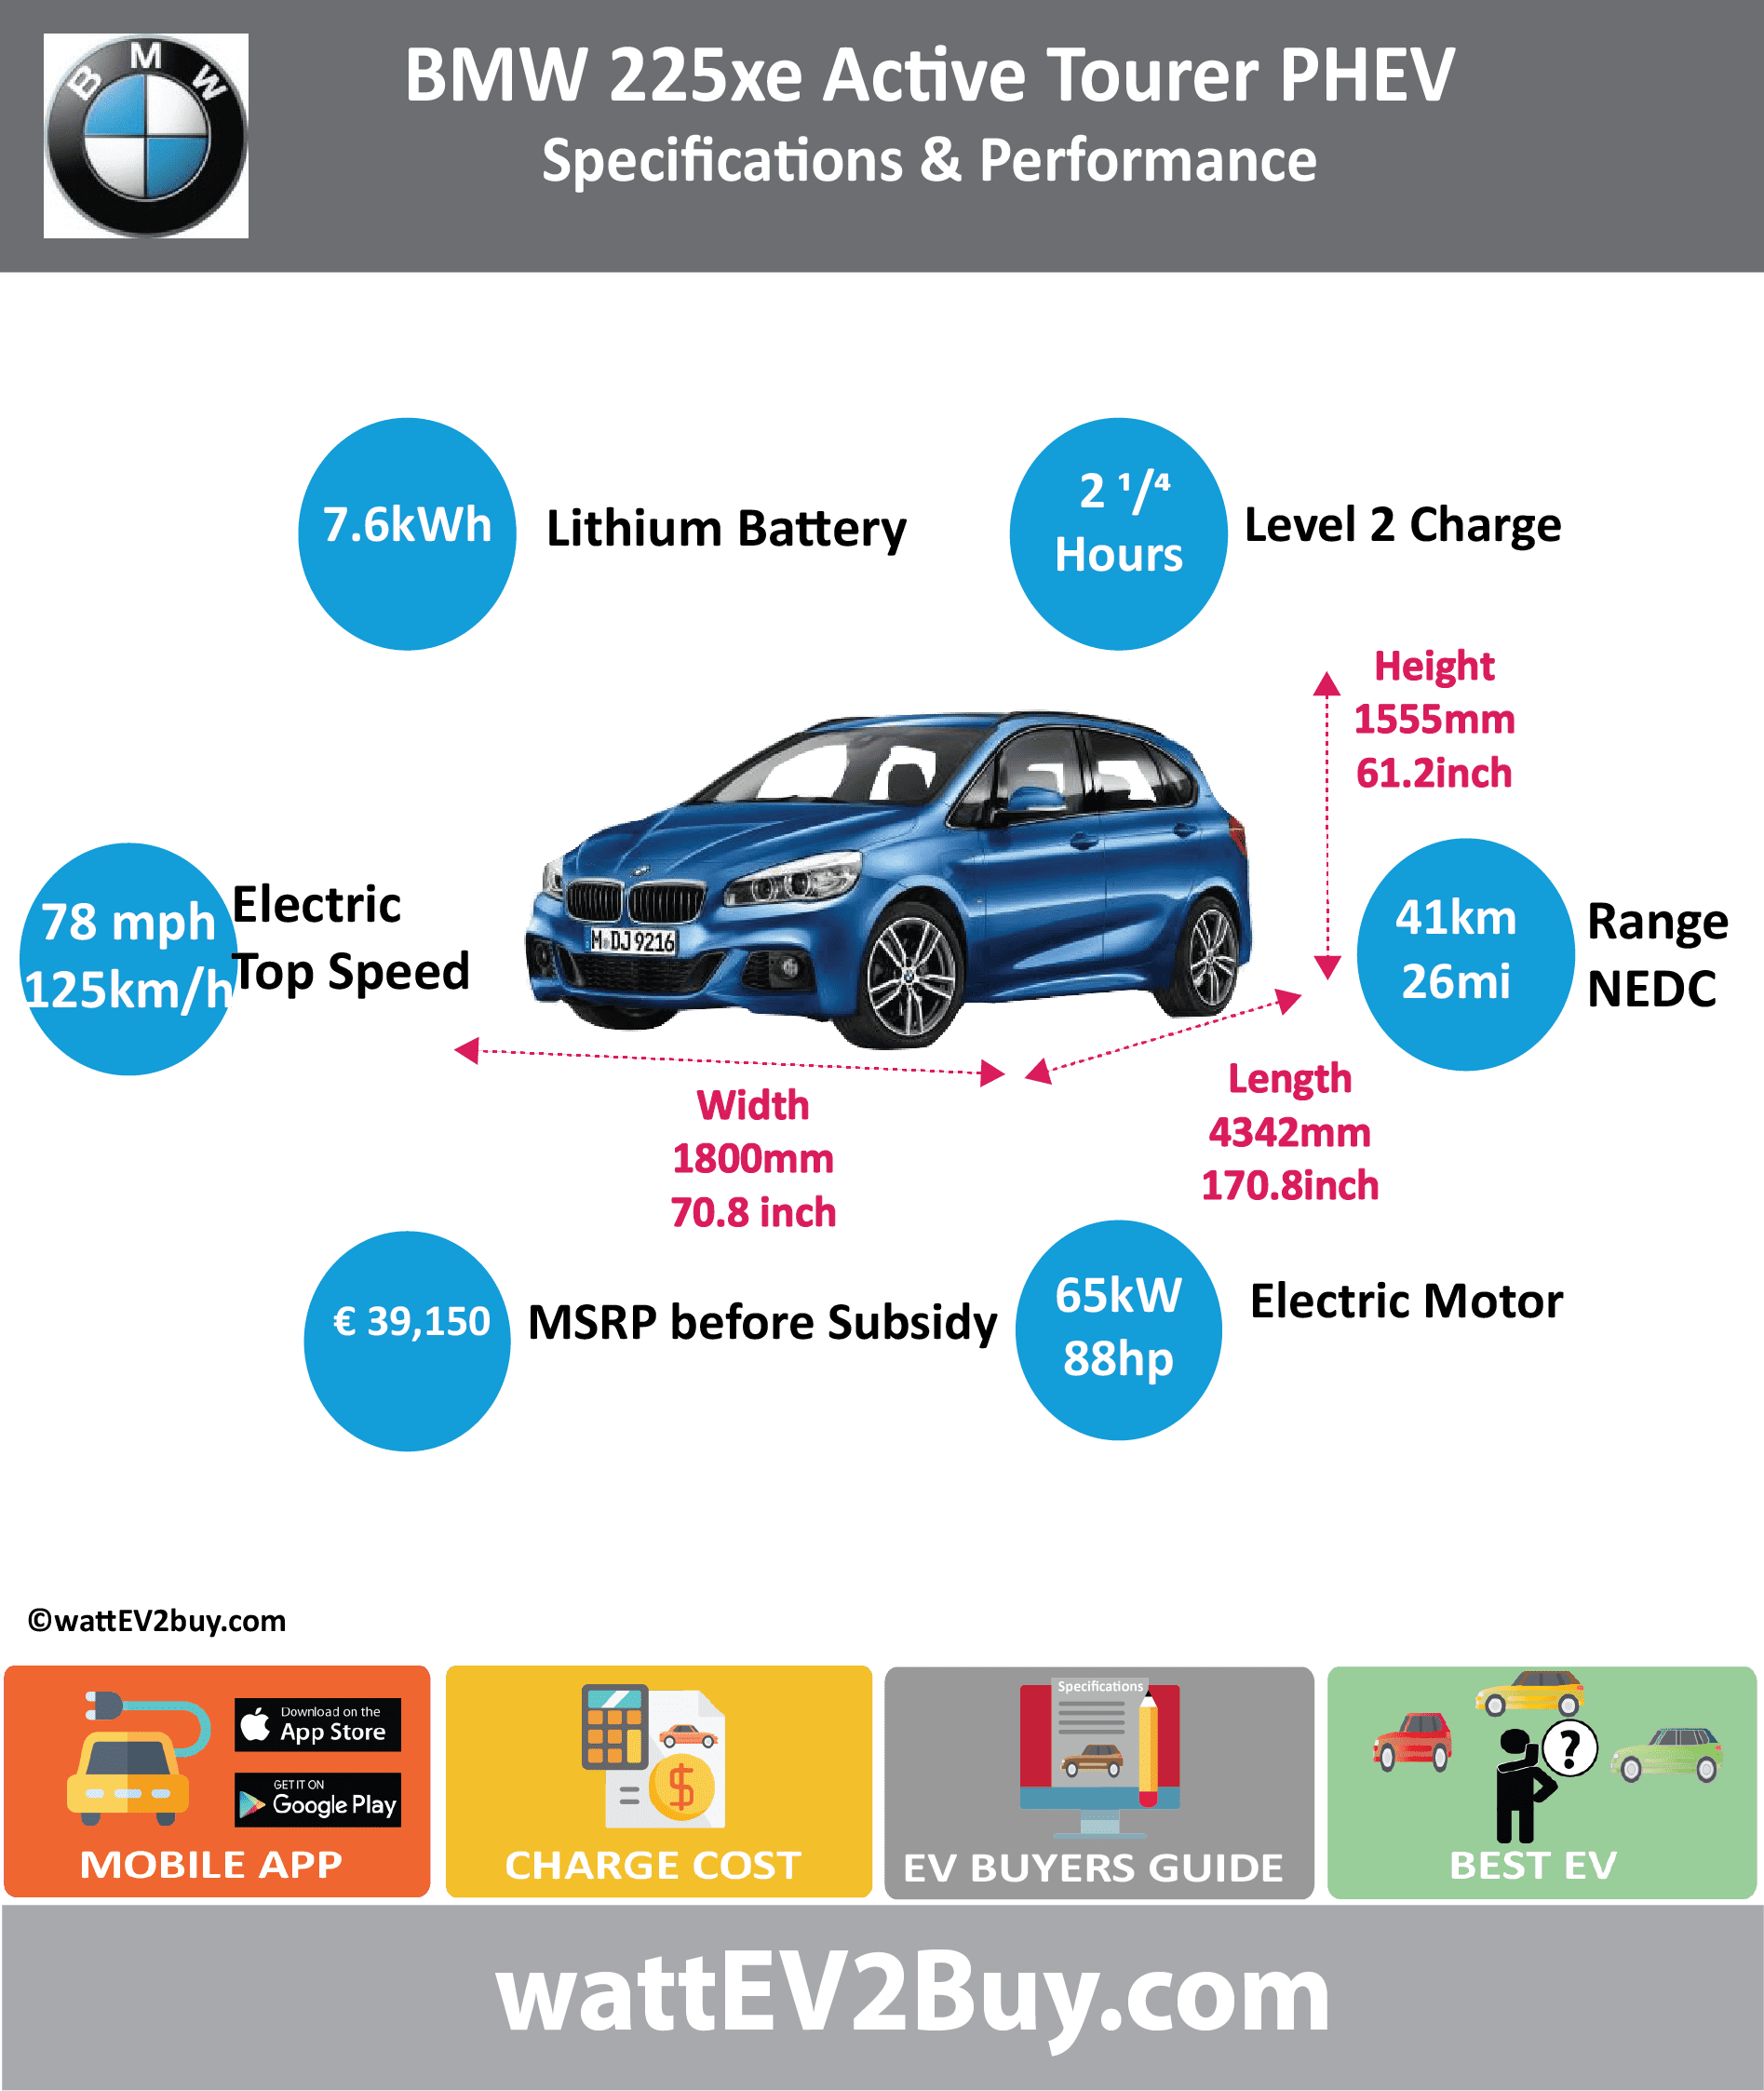 BMW 225xe Active Tourer PHEV wattev2Buy.com 2015 2016 2017 Battery Chemistry Lithium-Ion Battery Nominal rating kWh 7.6 Battery Capacity kWh 5.8 Modules Cells Battery Manufacturer Cooling Battery Warranty - years Battery Electric Range - NEDC Mi 25.6 Battery Electric Range - NEDC km 41 Electric Top Speed - mph 78.125 Electric Top Speed - km/h 125 Acceleration 0 - 37.2mph sec Onboard Charger kW 3.7 LV 1 Charge kW LV 1 Charge Time (Hours) 3.15 LV 2 Charge kW 3.7 LV 2 Charge Time (Hours) 2.15 LV 3 CCS/Combo kW LV 3 Charge Time (min to 80%) Charge Connector MPGe Combined - miles MPGe Combined - km MPGe City - miles MPGe City - km MPGe Highway - miles MPGe Highway - km Max Power - hp 136 Max Power - kW 100 Max Torque - lb.ft 162 Max Torque - N.m 220 Electric Motor Rear Mounted Electric Motor Output kW 65 Electric Motor Output hp 88 Transmission EU MSRP (before incentives & destination) € 39,150.00 Combustion 3 Cylinder Petrol Extended Range - mile Extended Range - km ICE Max Power - hp 132.76098 ICE Max Power - kW 99 ICE Max Torque - lb.ft ICE Max Torque - N.m ICE Top speed - mph 126.25 ICE Top speed - km/h 202 ICE Acceleration 0 - 62mph sec 6.7 ICE MPGe Combined - miles 134.5 ICE MPGe Combined - km ICE MPGe City - miles ICE MPGe City - km ICE MPGe Highway - miles ICE MPGe Highway - km ICE Transmission ICE Fuel Consumption l/100km 2.1 ICE Emission Rating ICE Emissions CO2/mi grams ICE Emissions CO2/km grams Total System Max Power - hp 216 Max Power - kW 161 Max Torque - lb.ft 284 Max Torque - N.m 385 Vehicle Doors Dimensions GVWR (kg) Curb Weight (kg) 1730 Ground Clearance (mm) Lenght (mm) 4342 Width (mm) 1800 Height (mm) 1555 Wheelbase (mm) 2670 Lenght (inc) 170.8 Width (inc) 70.8 Height (inc) 61.2 Wheelbase (inc) 105.0 Other